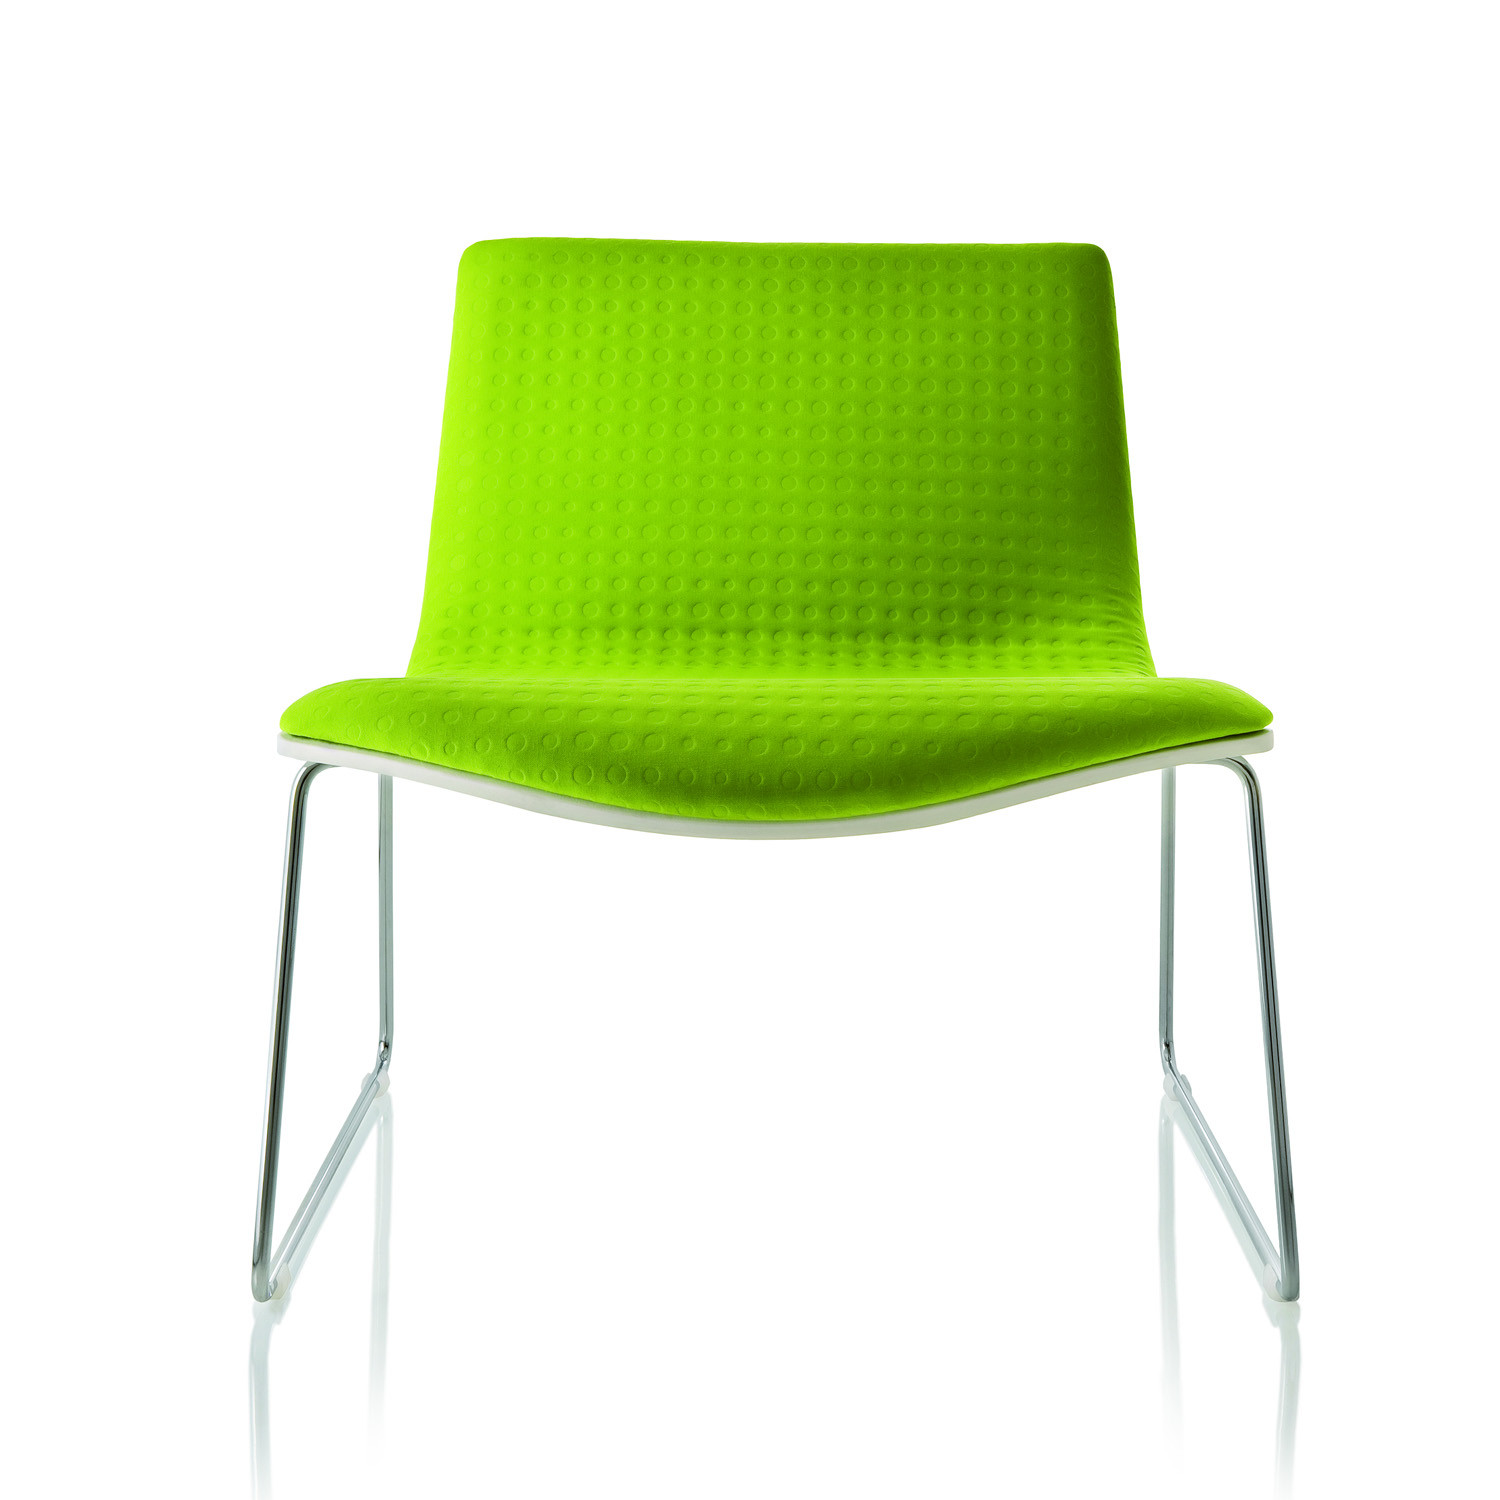 Amarcord Chair from Apres